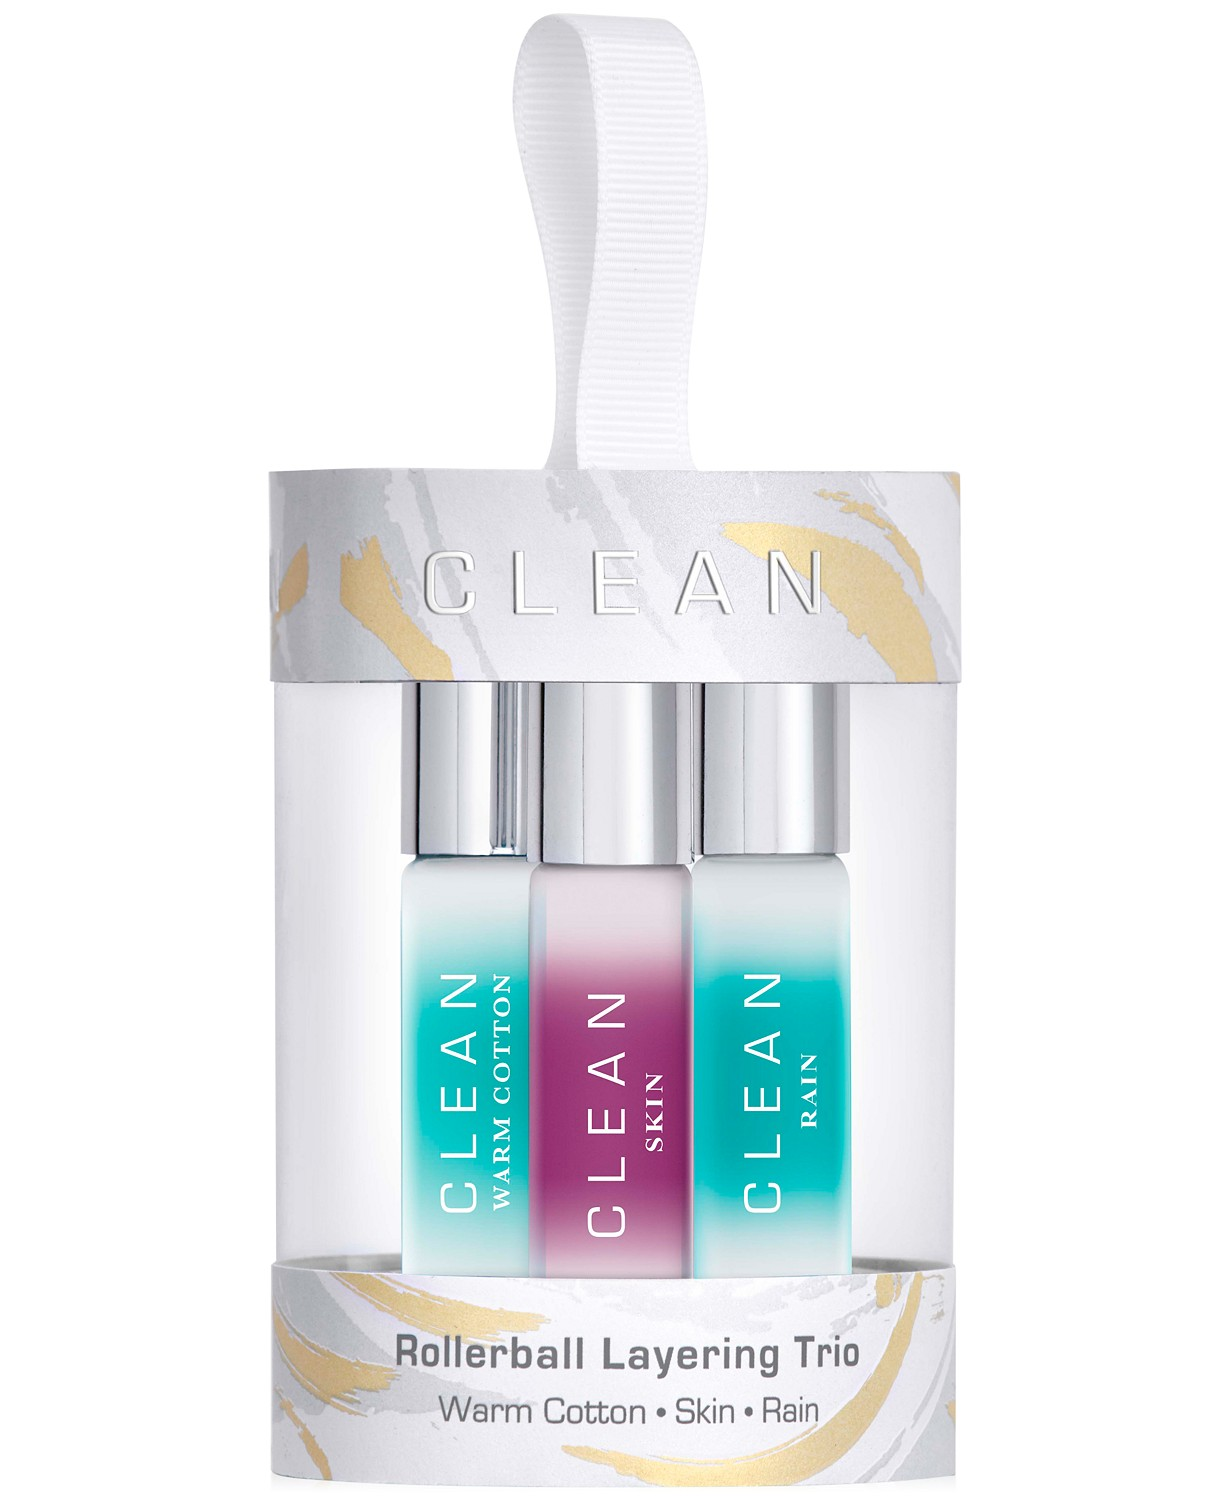 CLEAN Fragrance 3 Piece Eau de Parfum Rollerball Layering Set